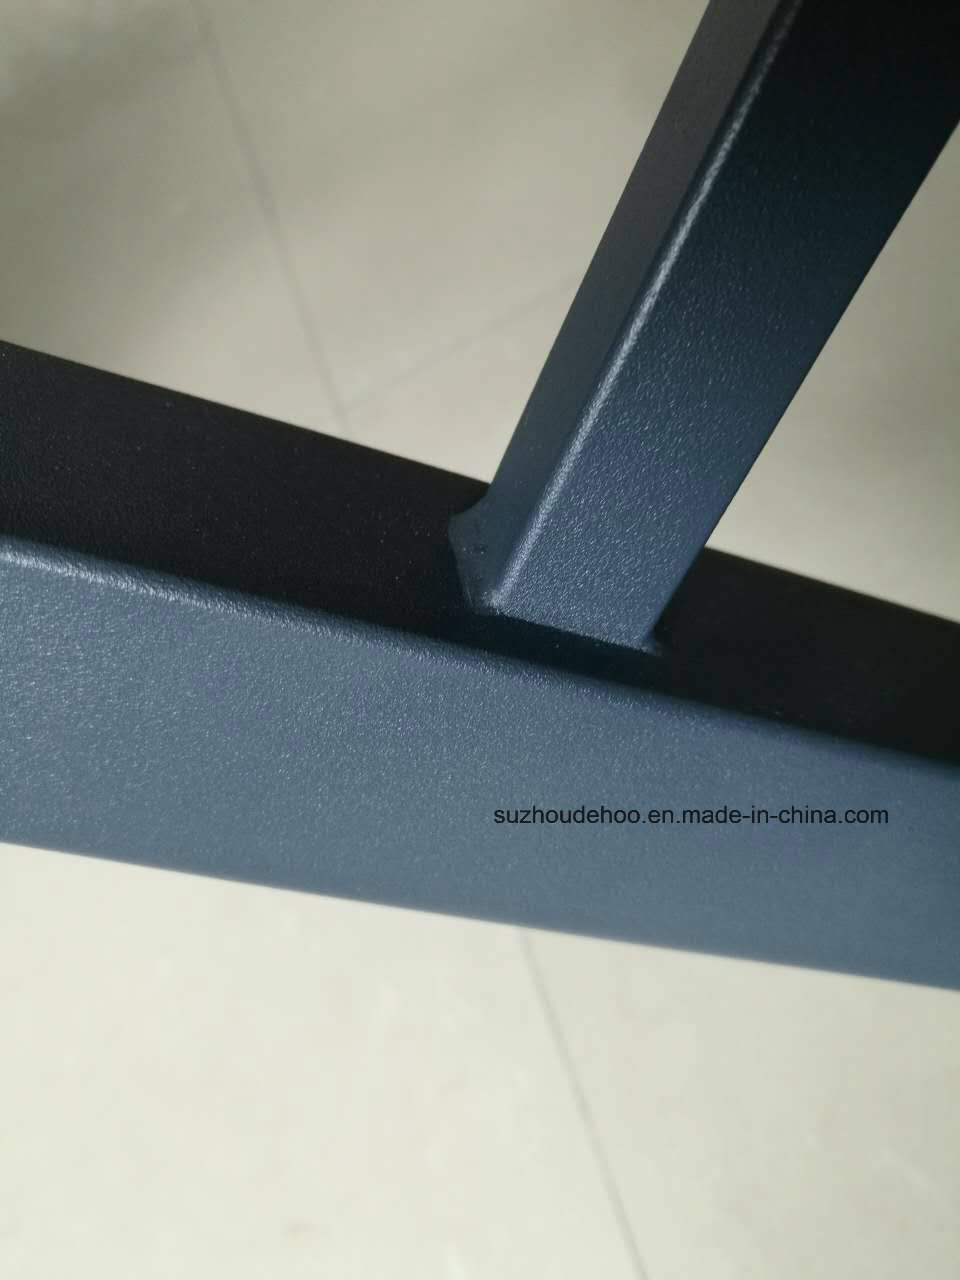 Akzo Nobel Powder Coated for Barrier